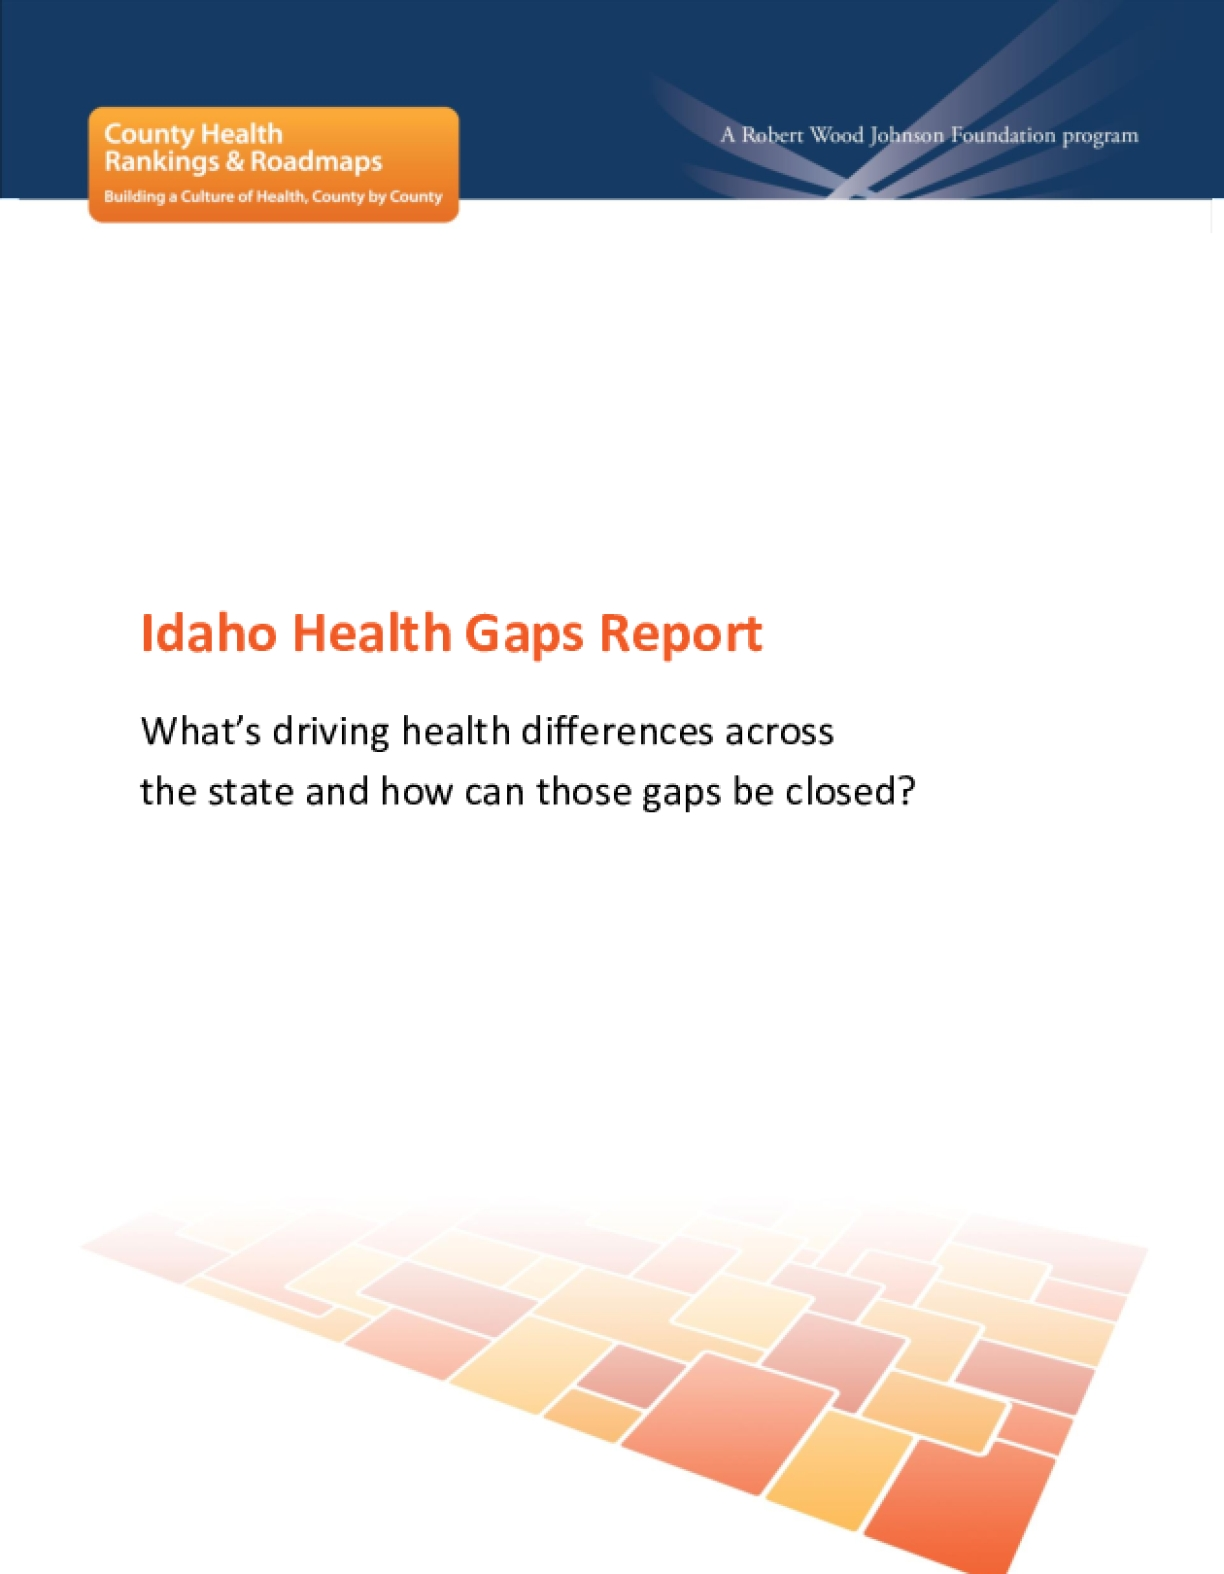 Idaho Health Gaps Report: What's Driving Health Differences Across the State and How Can Those Gaps Be Closed?